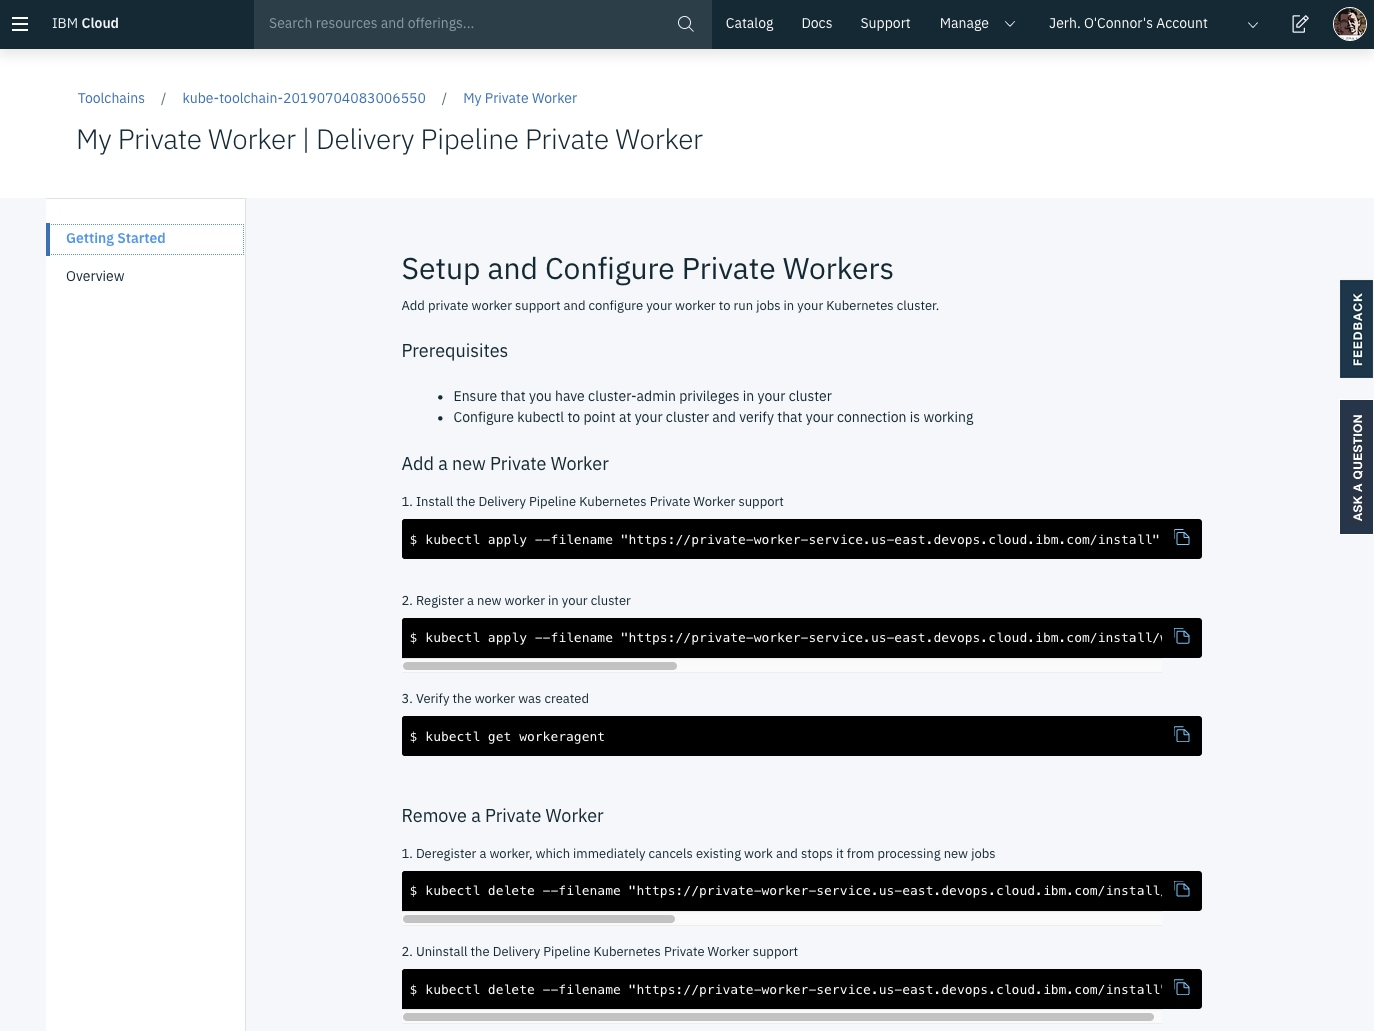 Setup and Configure Private Workers